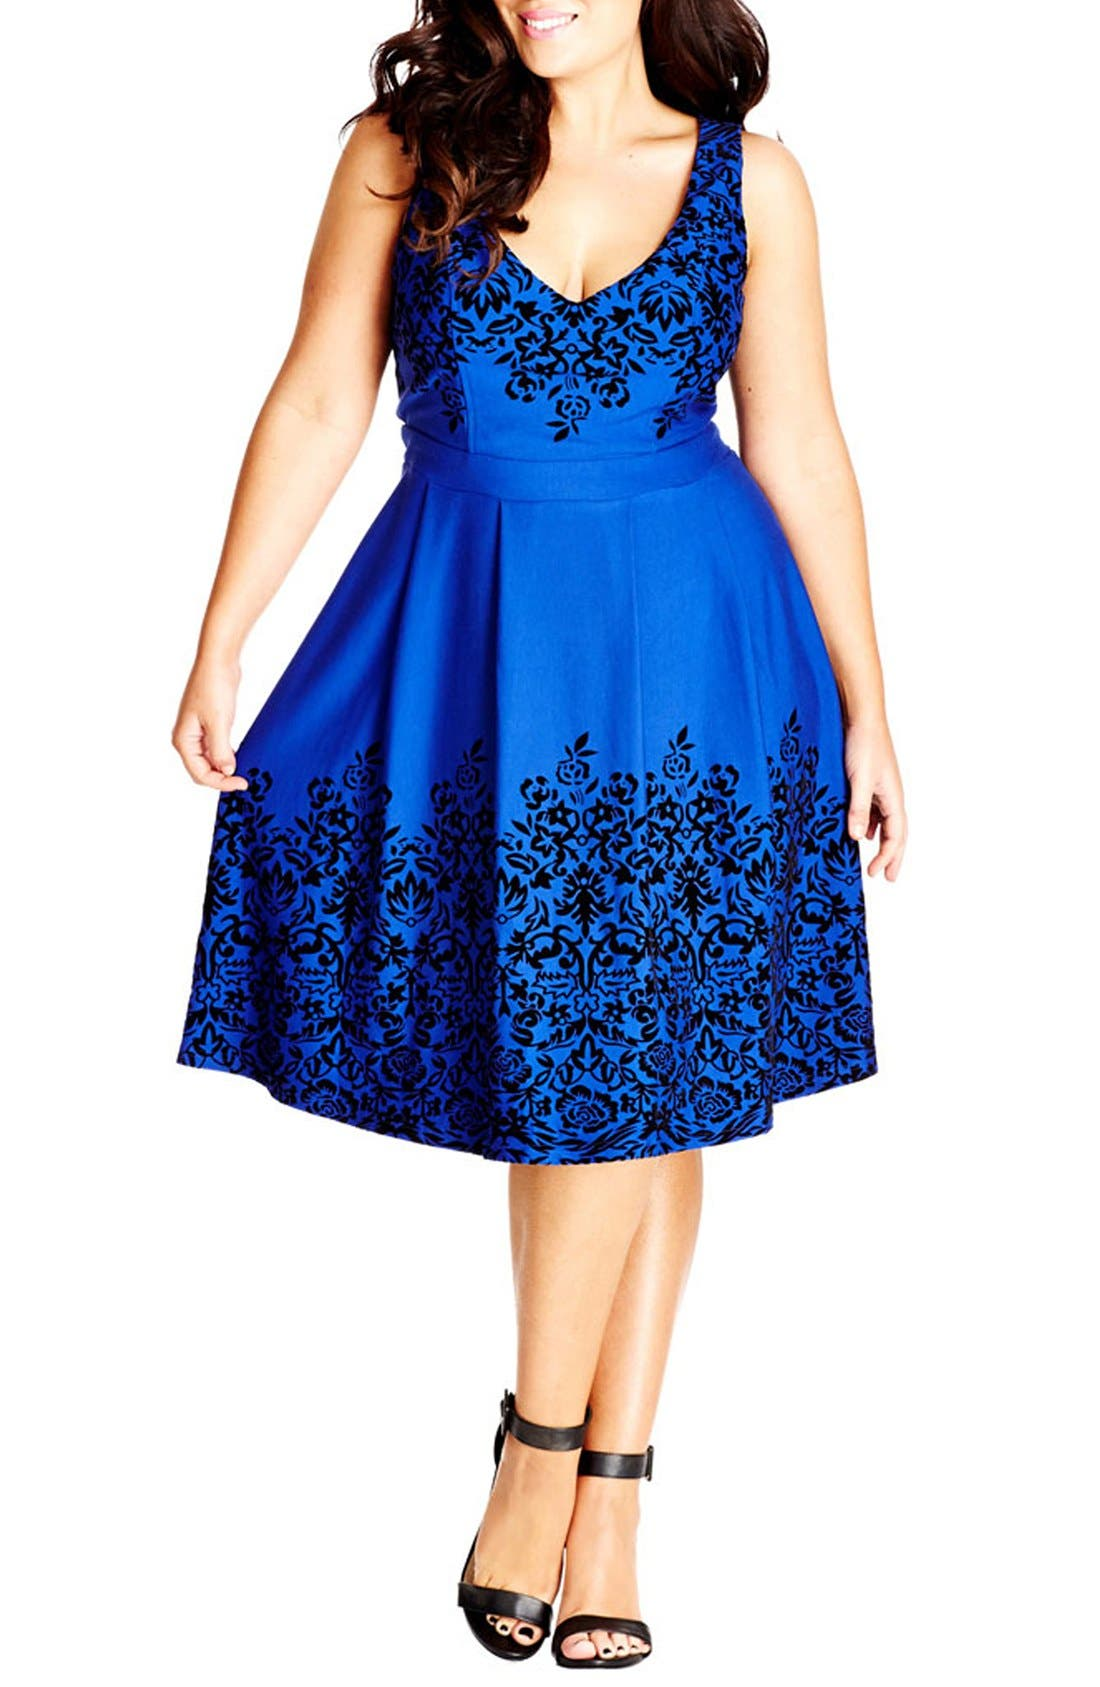 Alternate Image 1 Selected - City Chic Border Flocked Fit & Flare Dress (Plus Size)